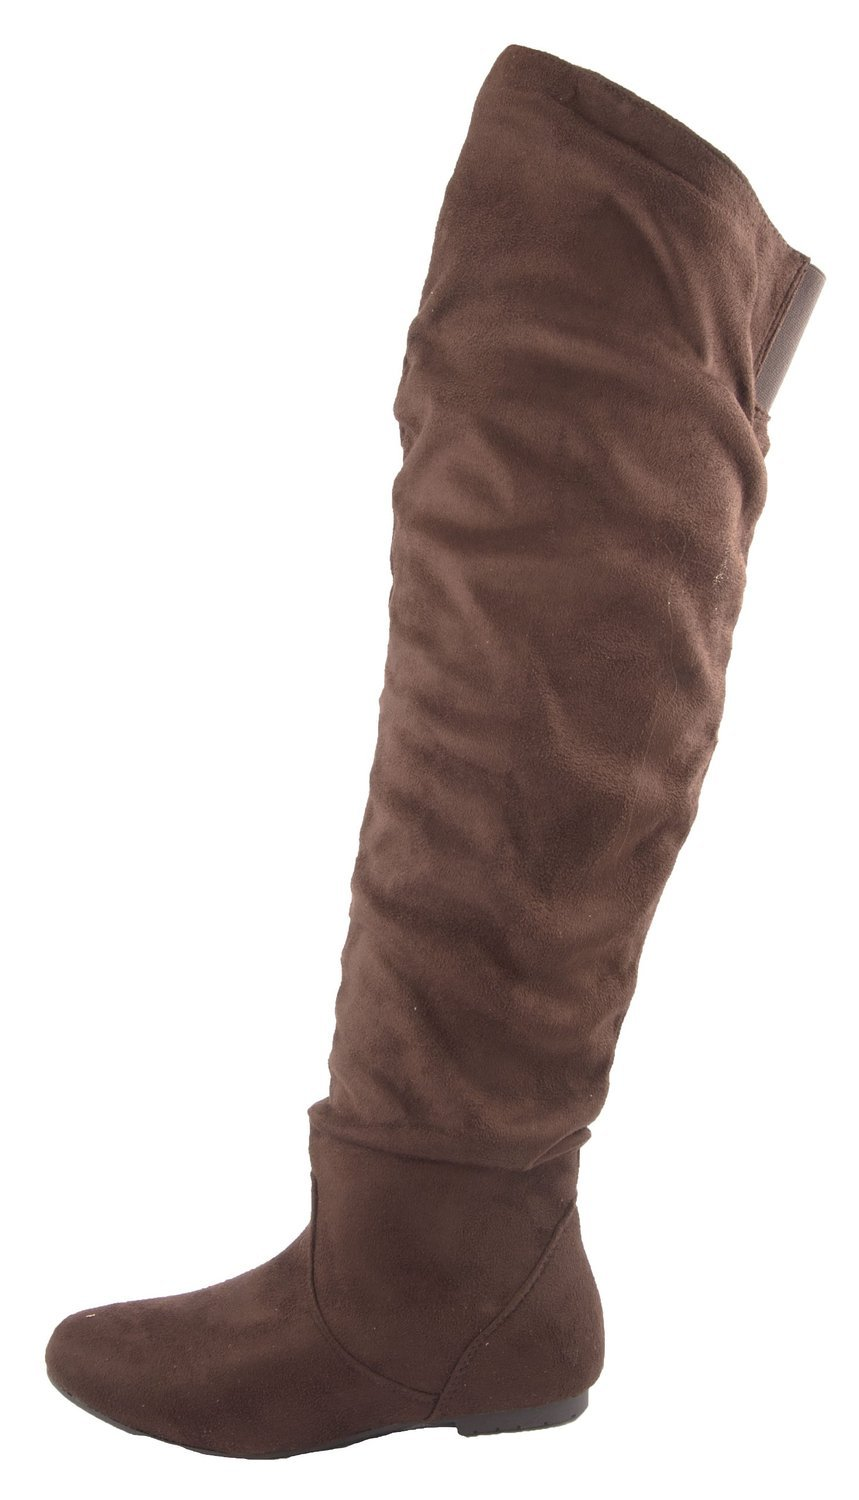 Nature Breeze Women's Vickie Hi Slouchy Over The Knee Boots (8.5 B(M) US, Brown Suede)